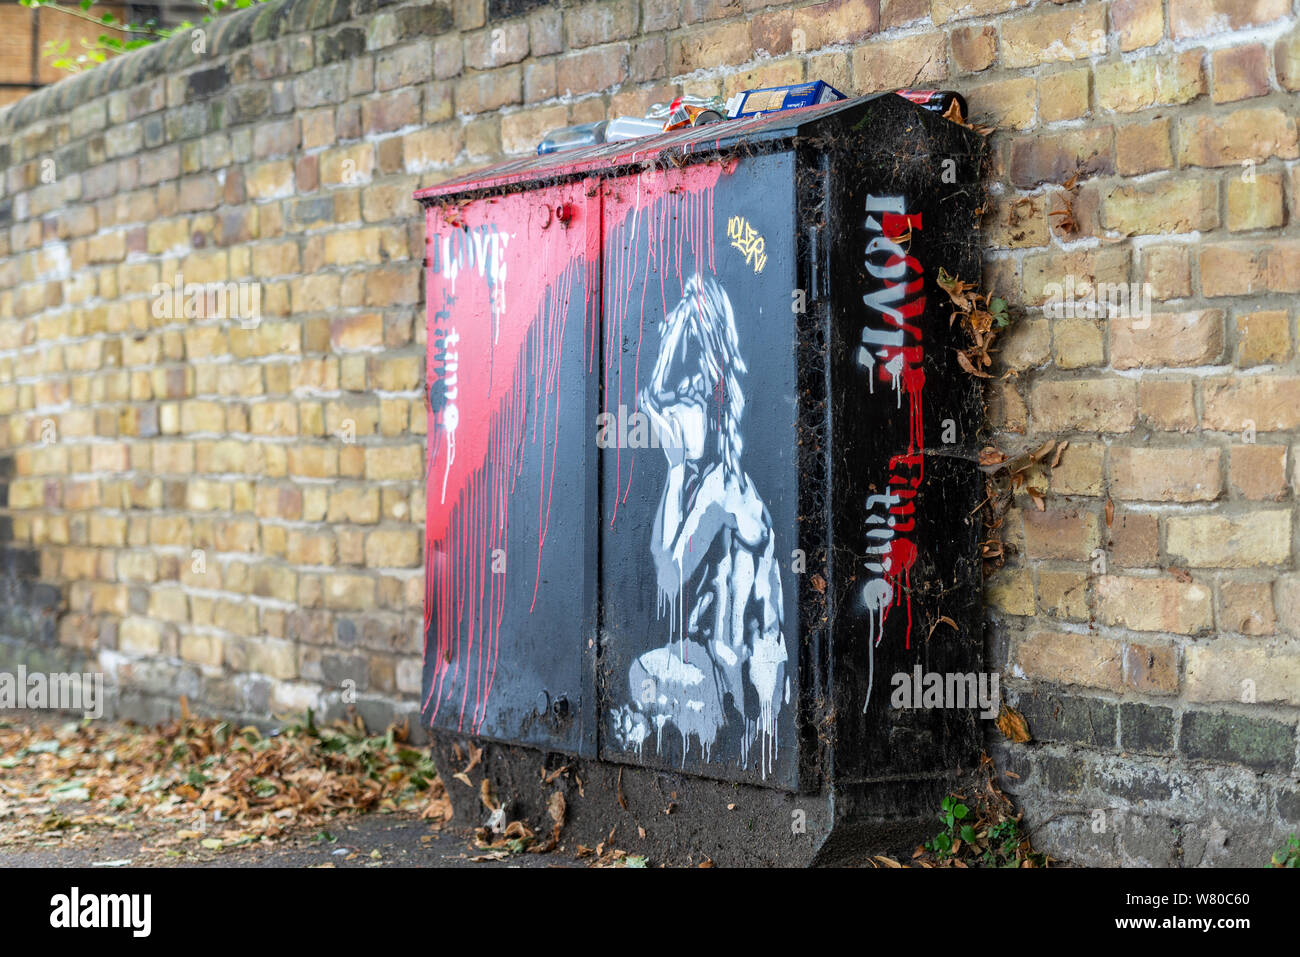 Banksy style artwork of a crying child on a telecommunications junction box, with red paint running down like blood and the words Love Time. Rubbish Stock Photo